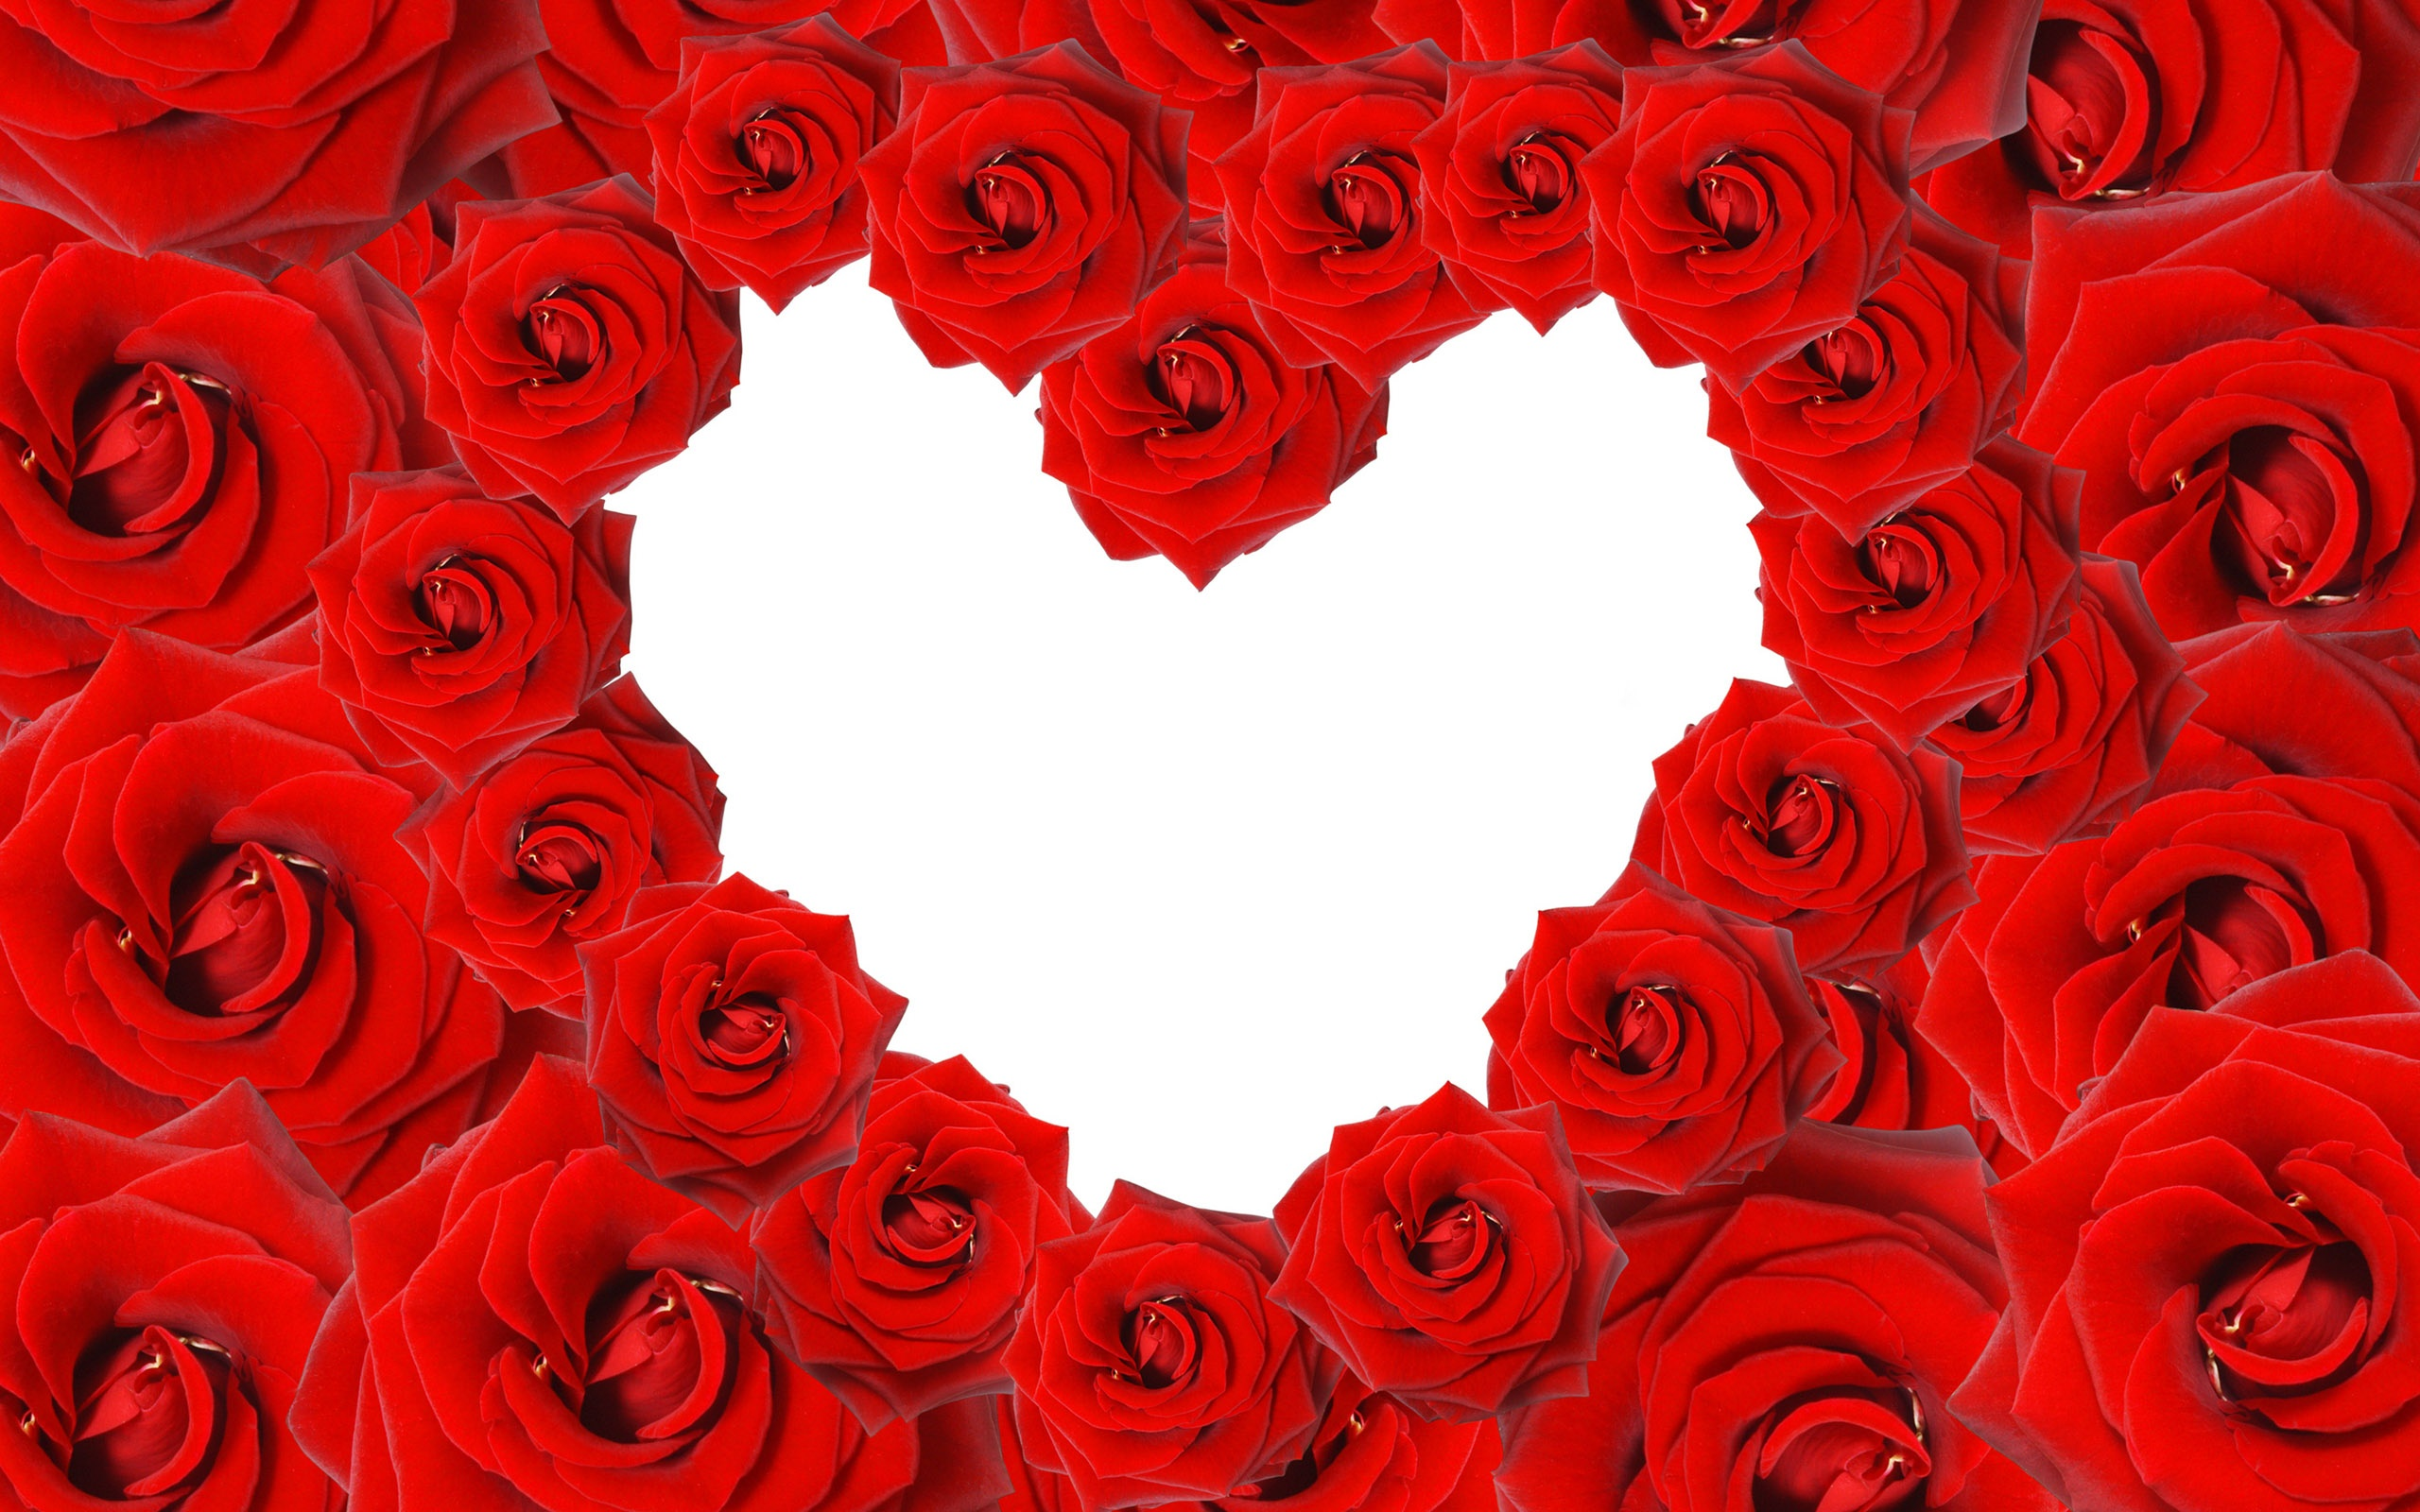 Red Roses Love Heart